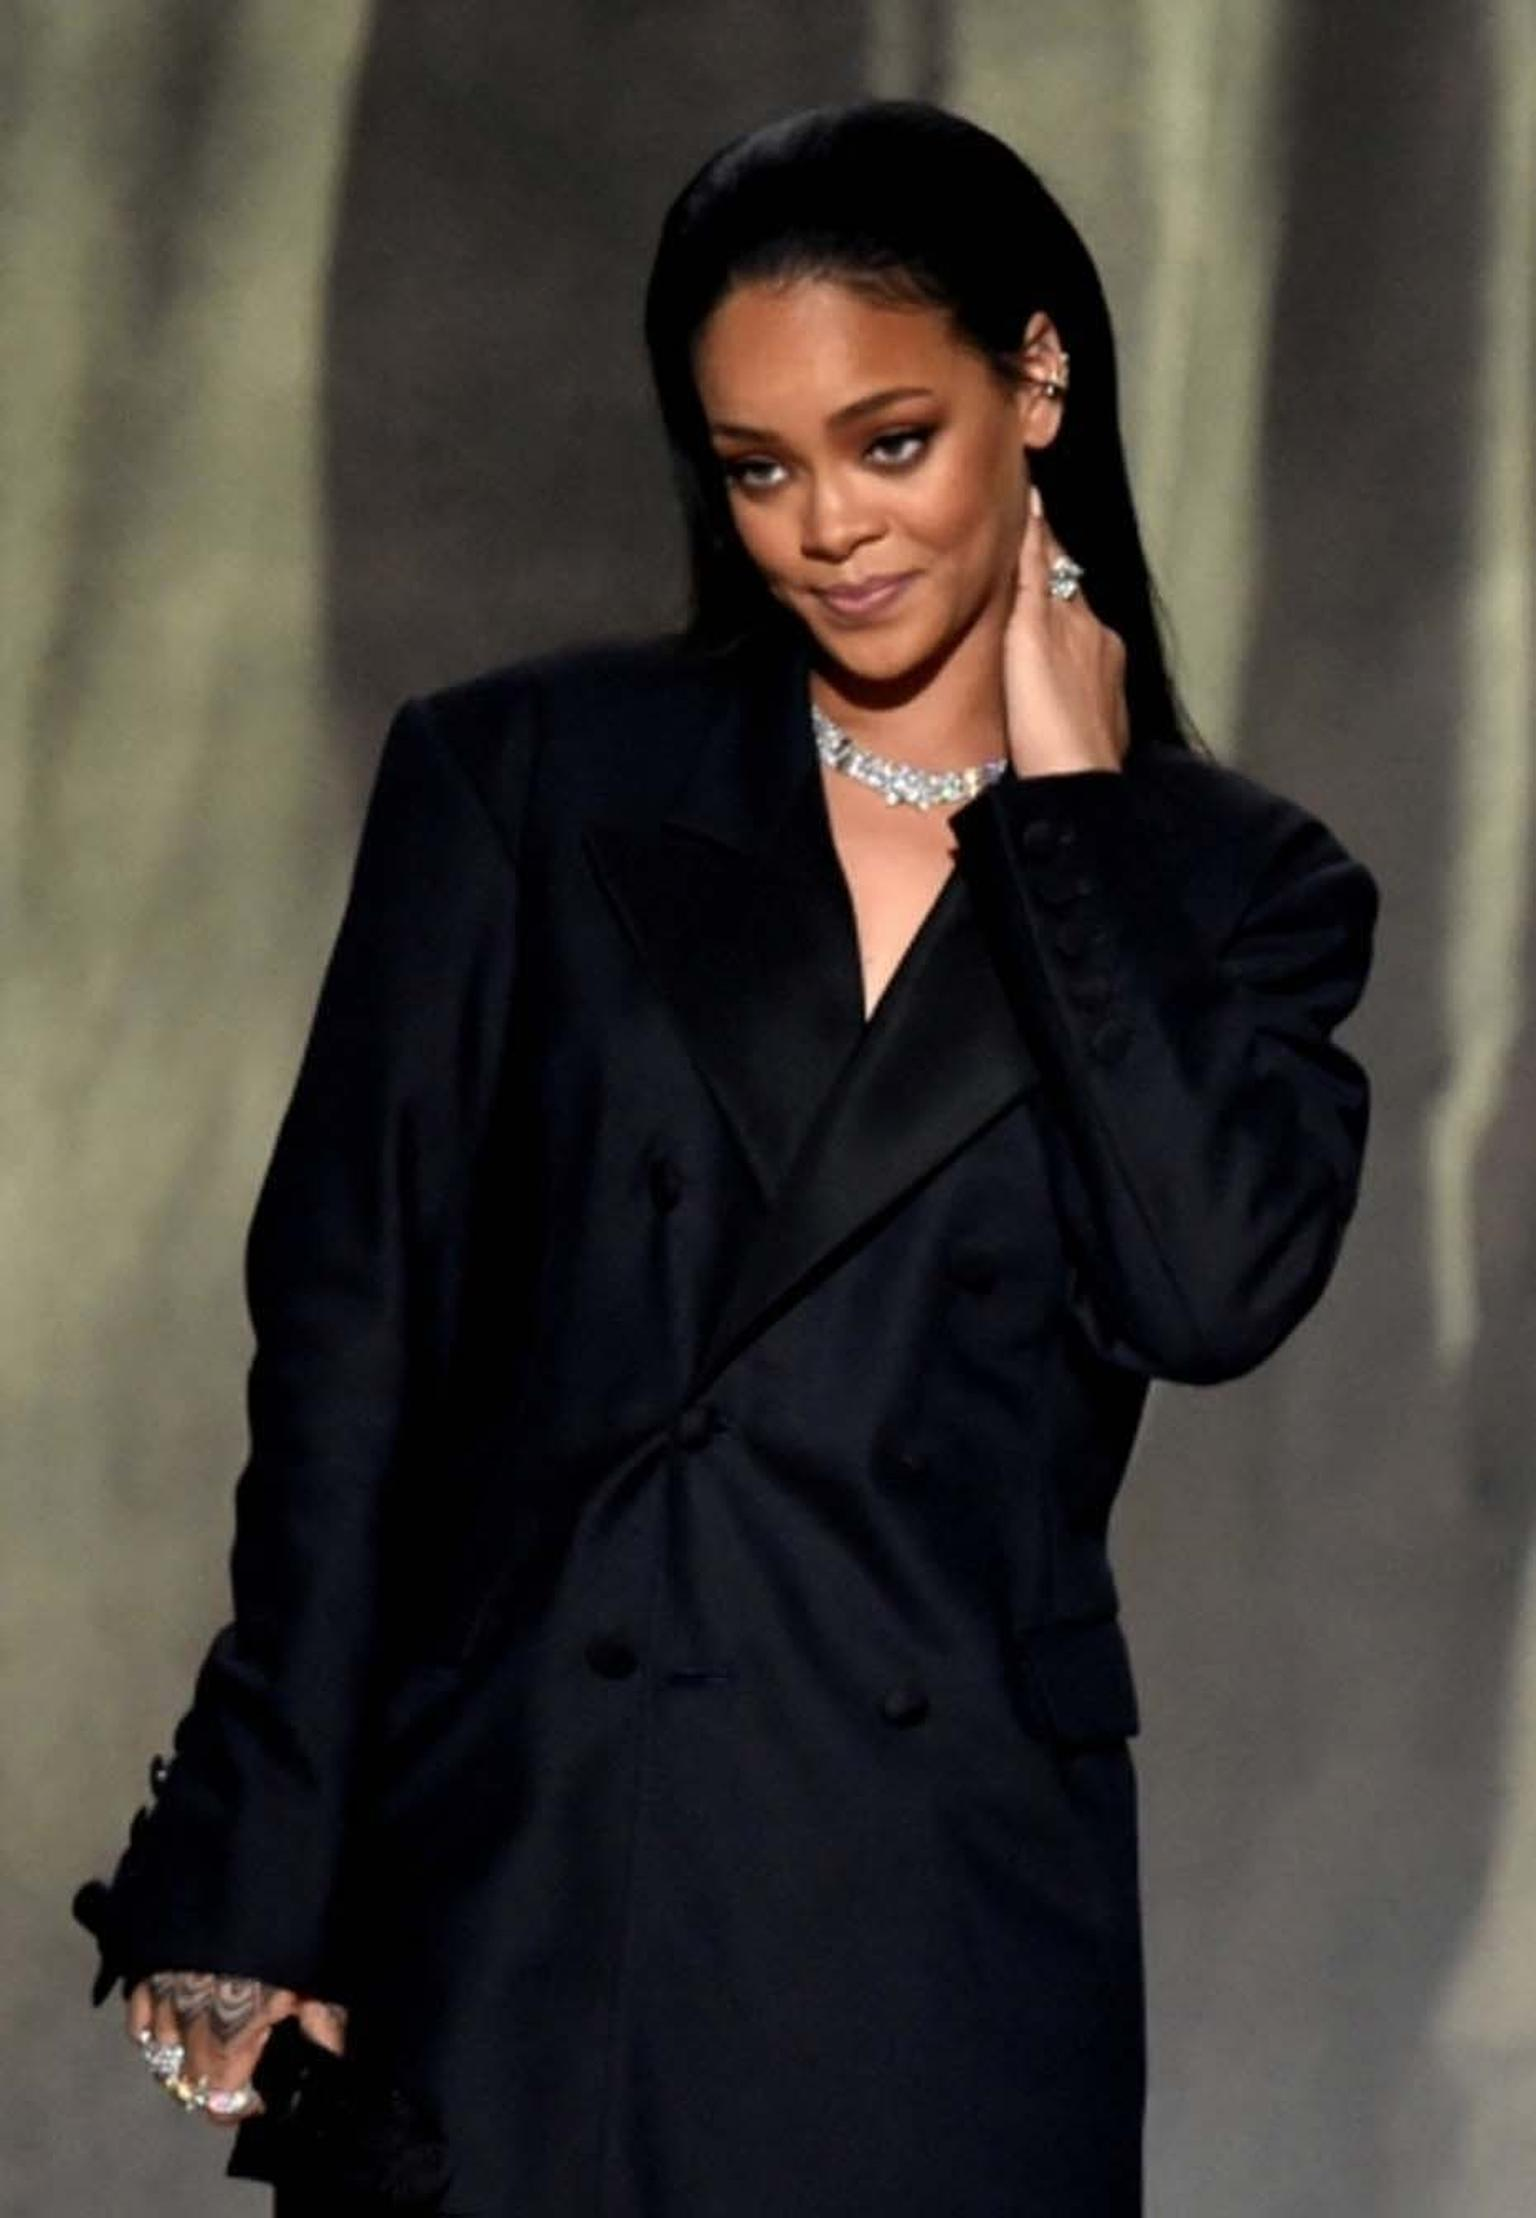 Rihanna teamed her oversized tuxedo jacket with some impressive high jewelry, including a Harry Kotlar 8.00ct pear-shaped diamond ring worth $1 million, a selection of Chopard rings and a stunning Chopard diamond necklace set in platinum, as she took to t